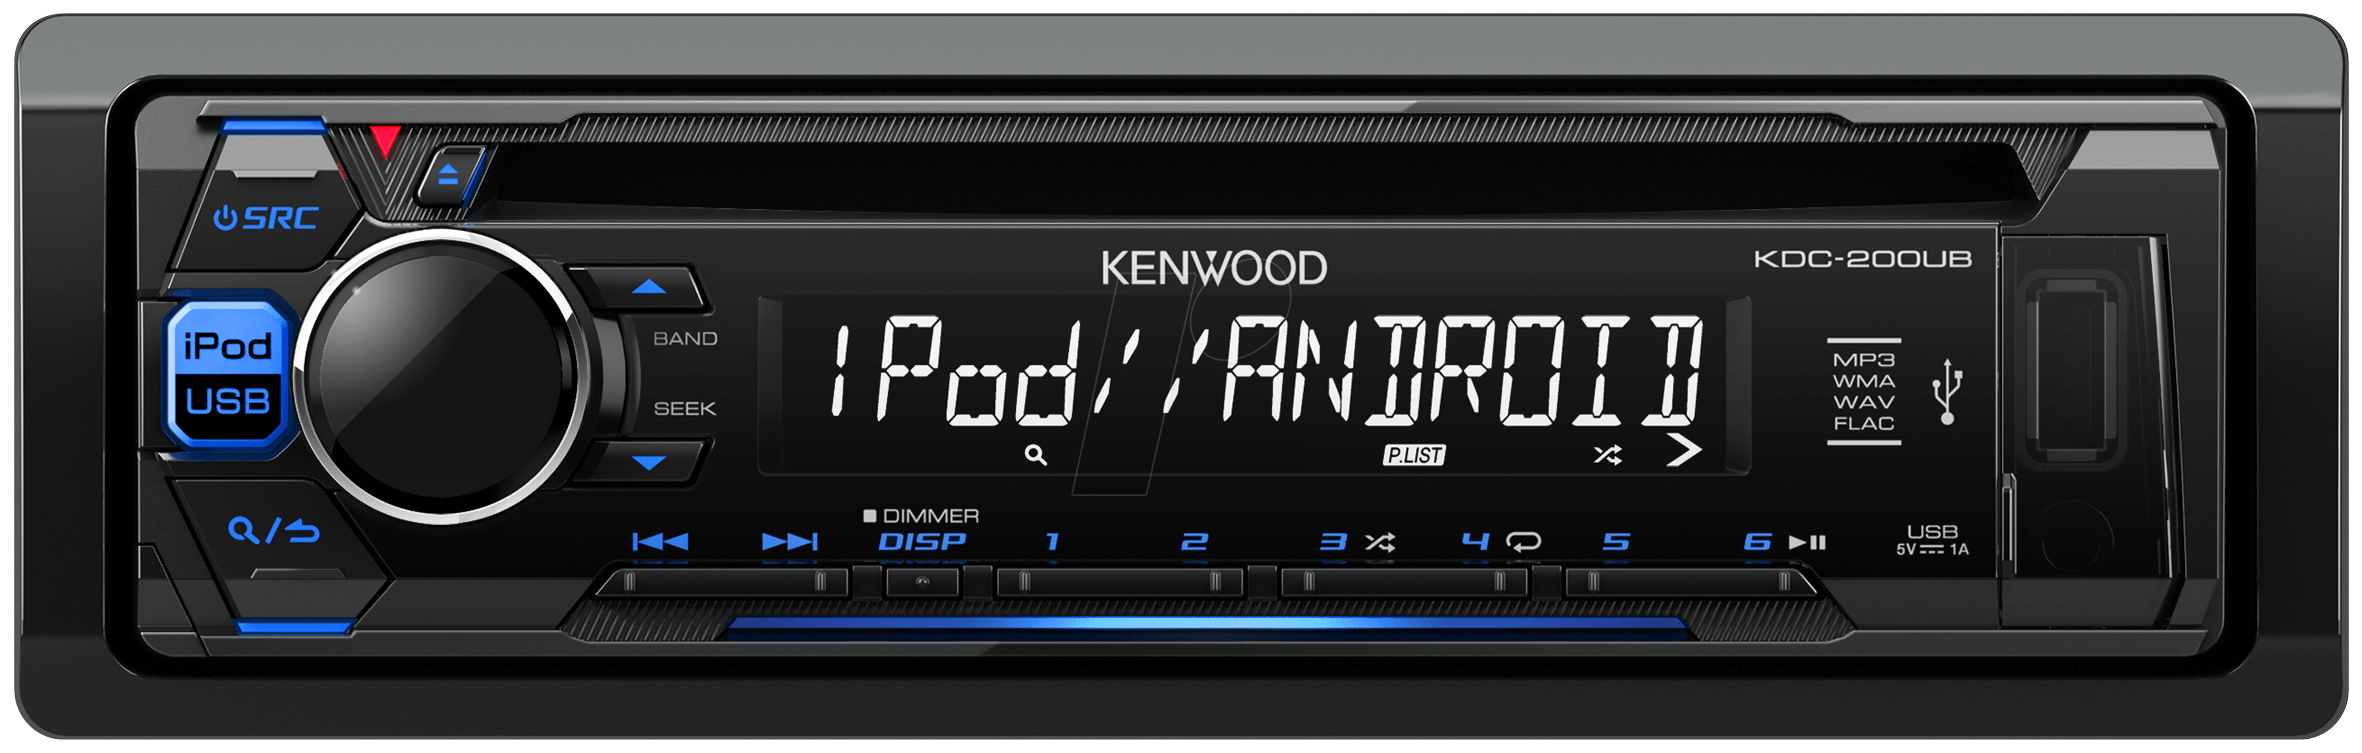 kw kdc 200ub cd receiver ipod iphone direct control at cd receiver ipod iphone direct control kenwood kdc200ub